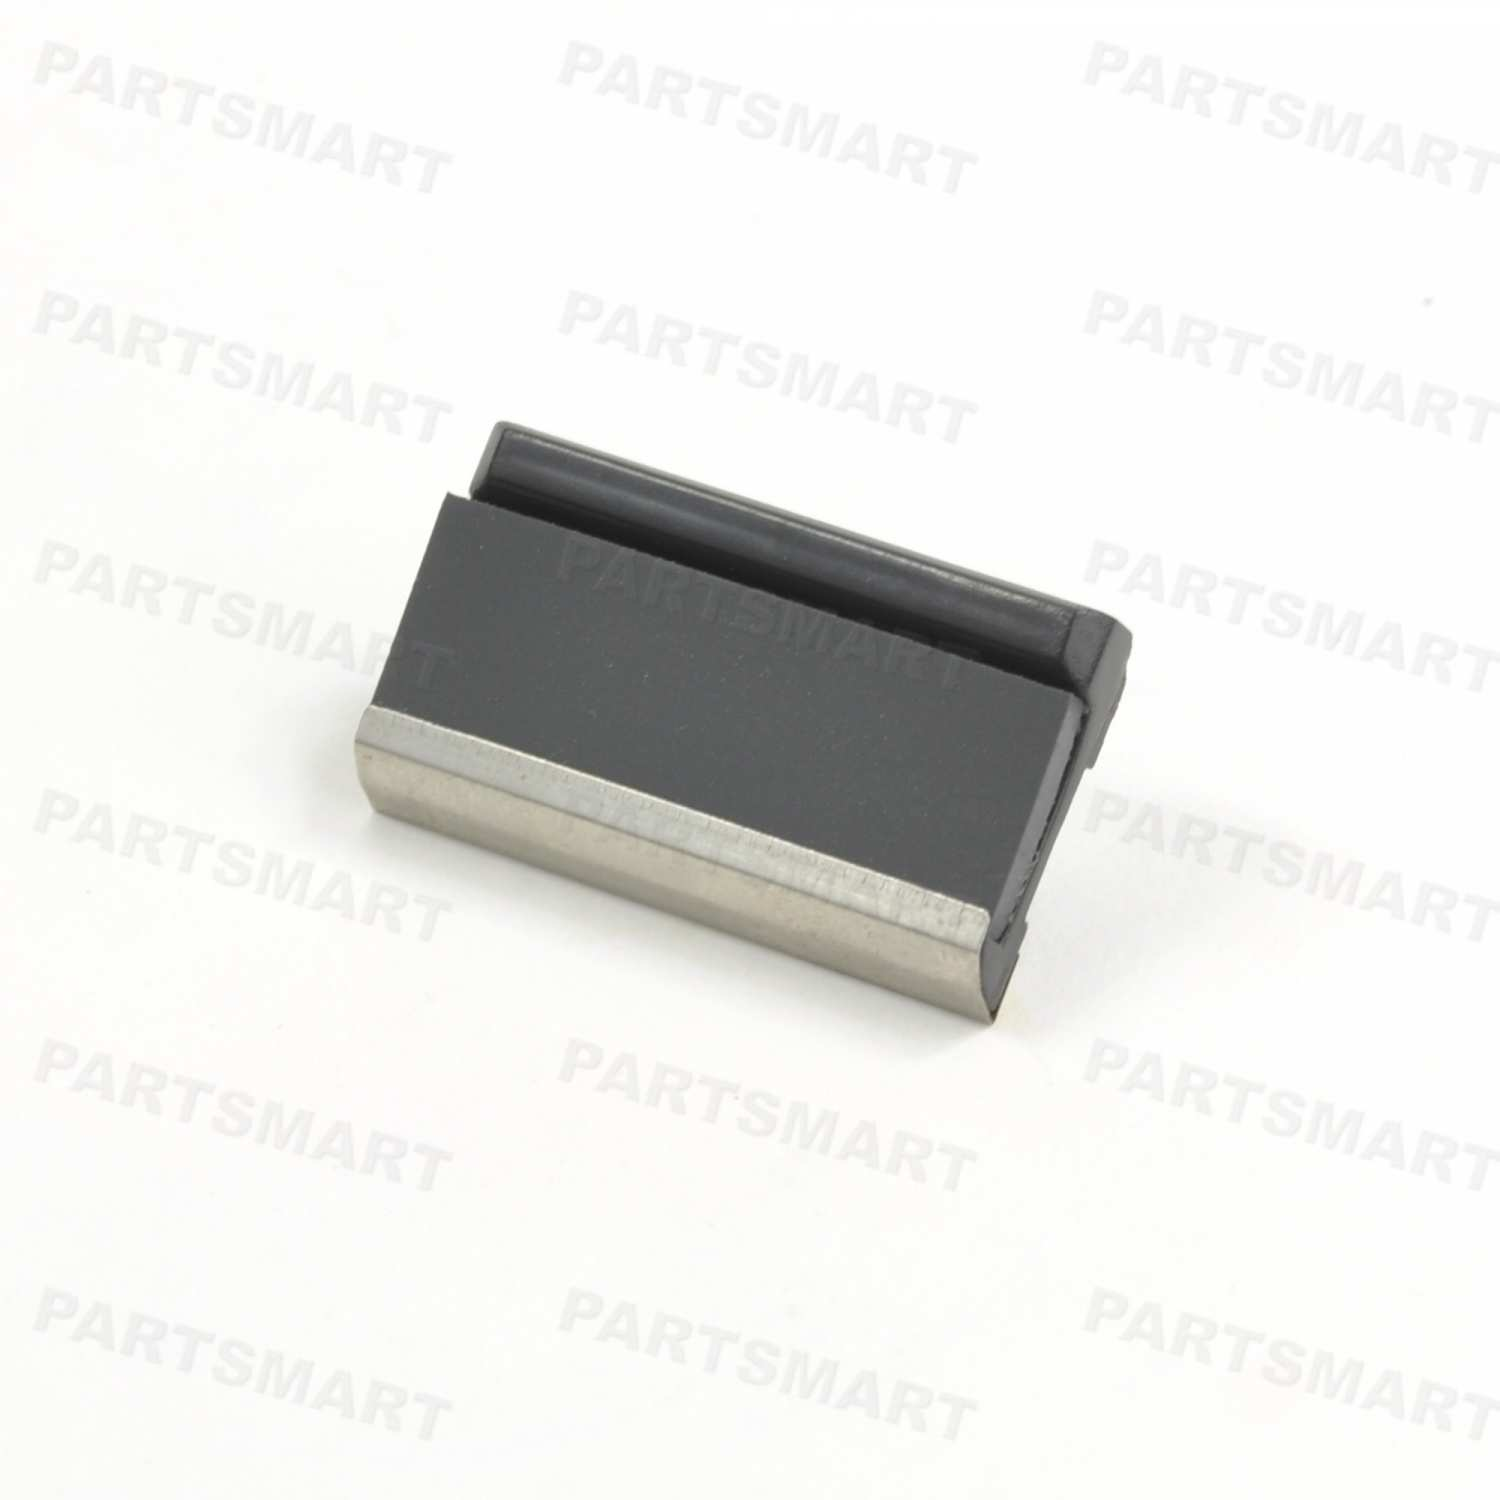 RF5-2703-000 Separation Pad, Tray 1 for HP LaserJet 8100